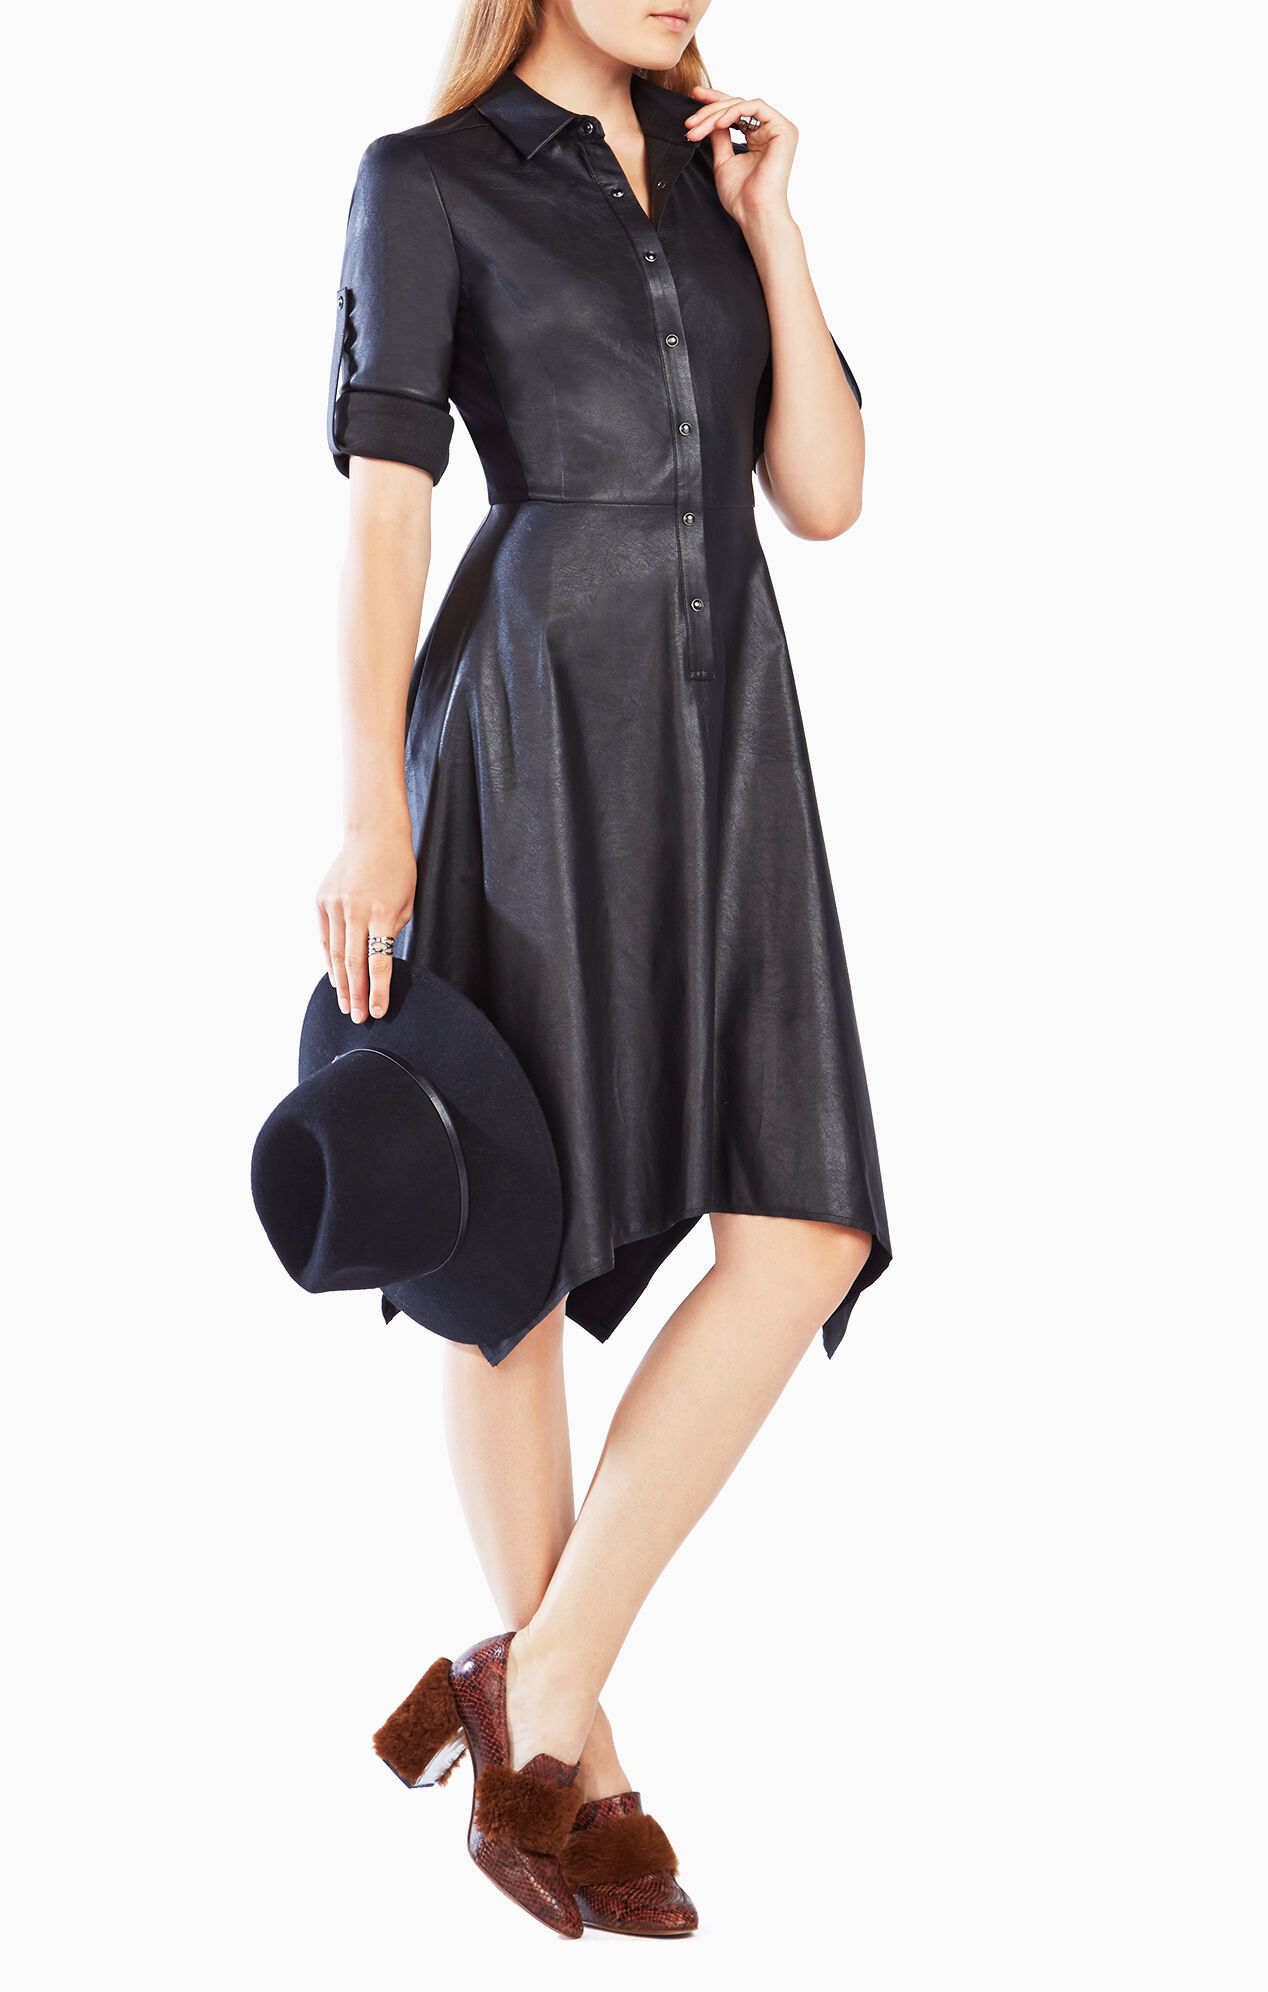 Shop for Leather Dress at teraisompcz8d.ga Free Shipping. Free Returns. All the time.